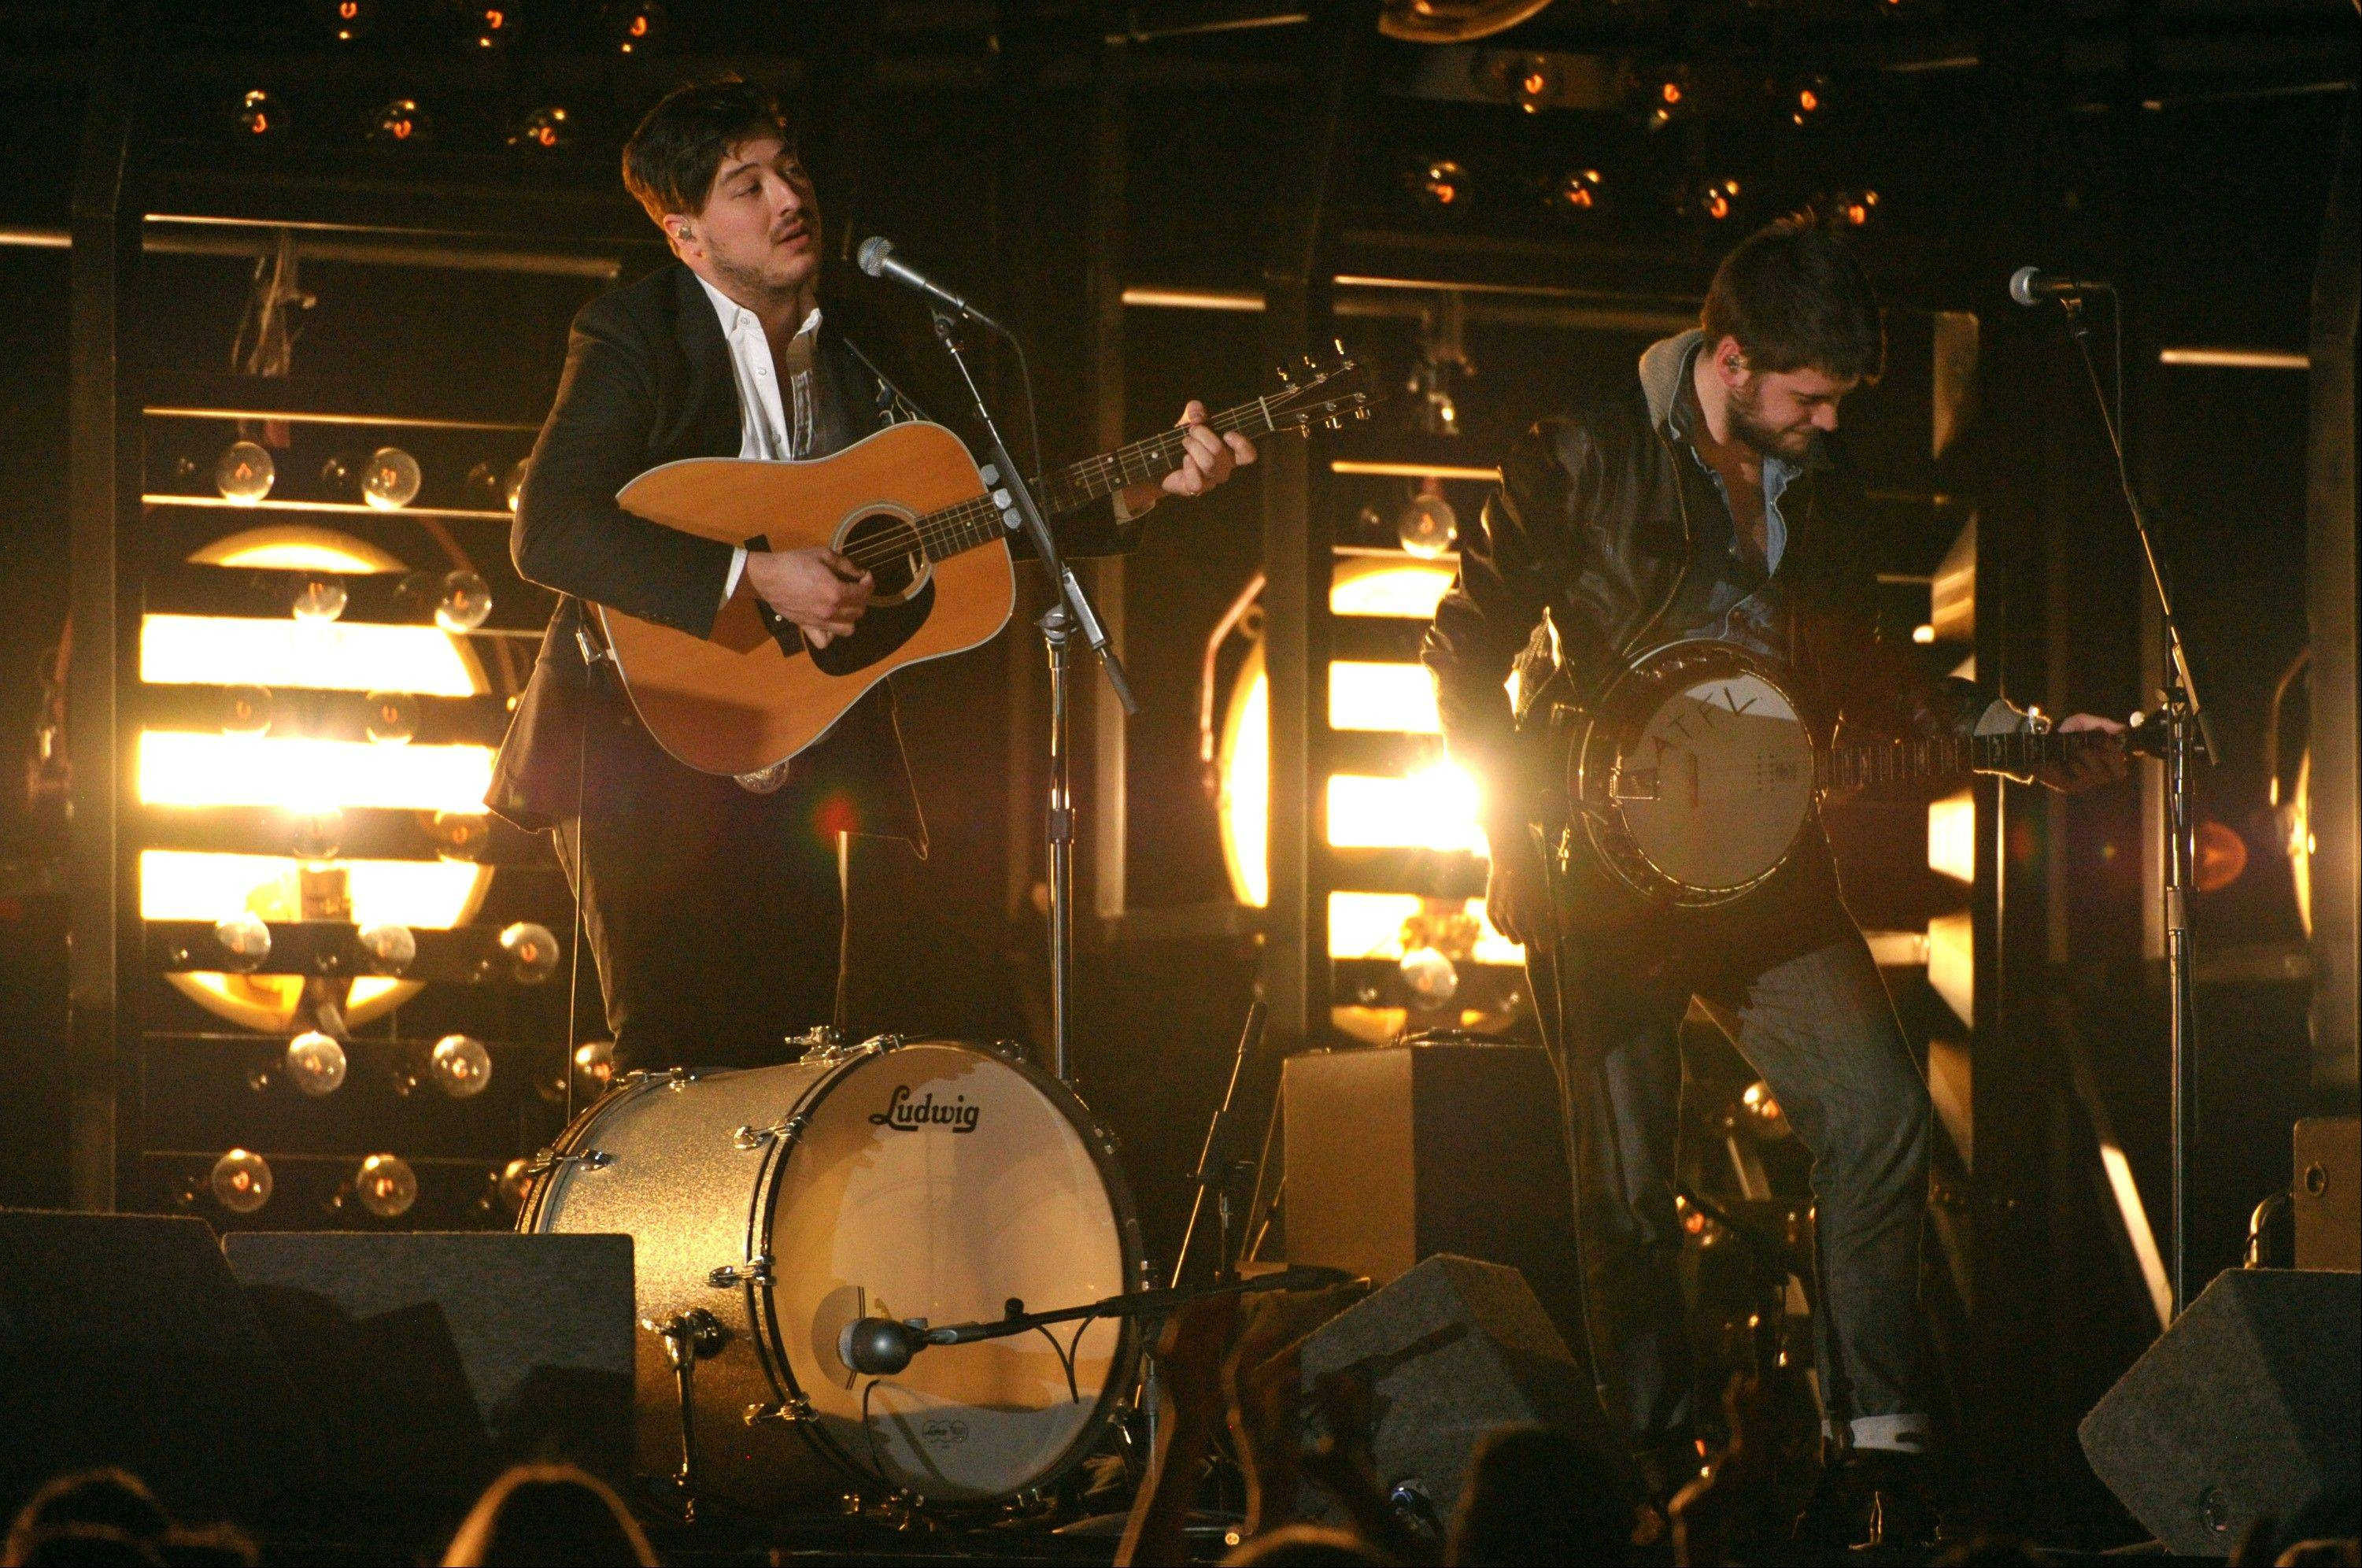 Marcus Mumford, left, and Winston Marshall, of Mumford & Sons, perform at the 55th annual Grammy Awards on Sunday in Los Angeles. The band took home the coveted album of the year award.